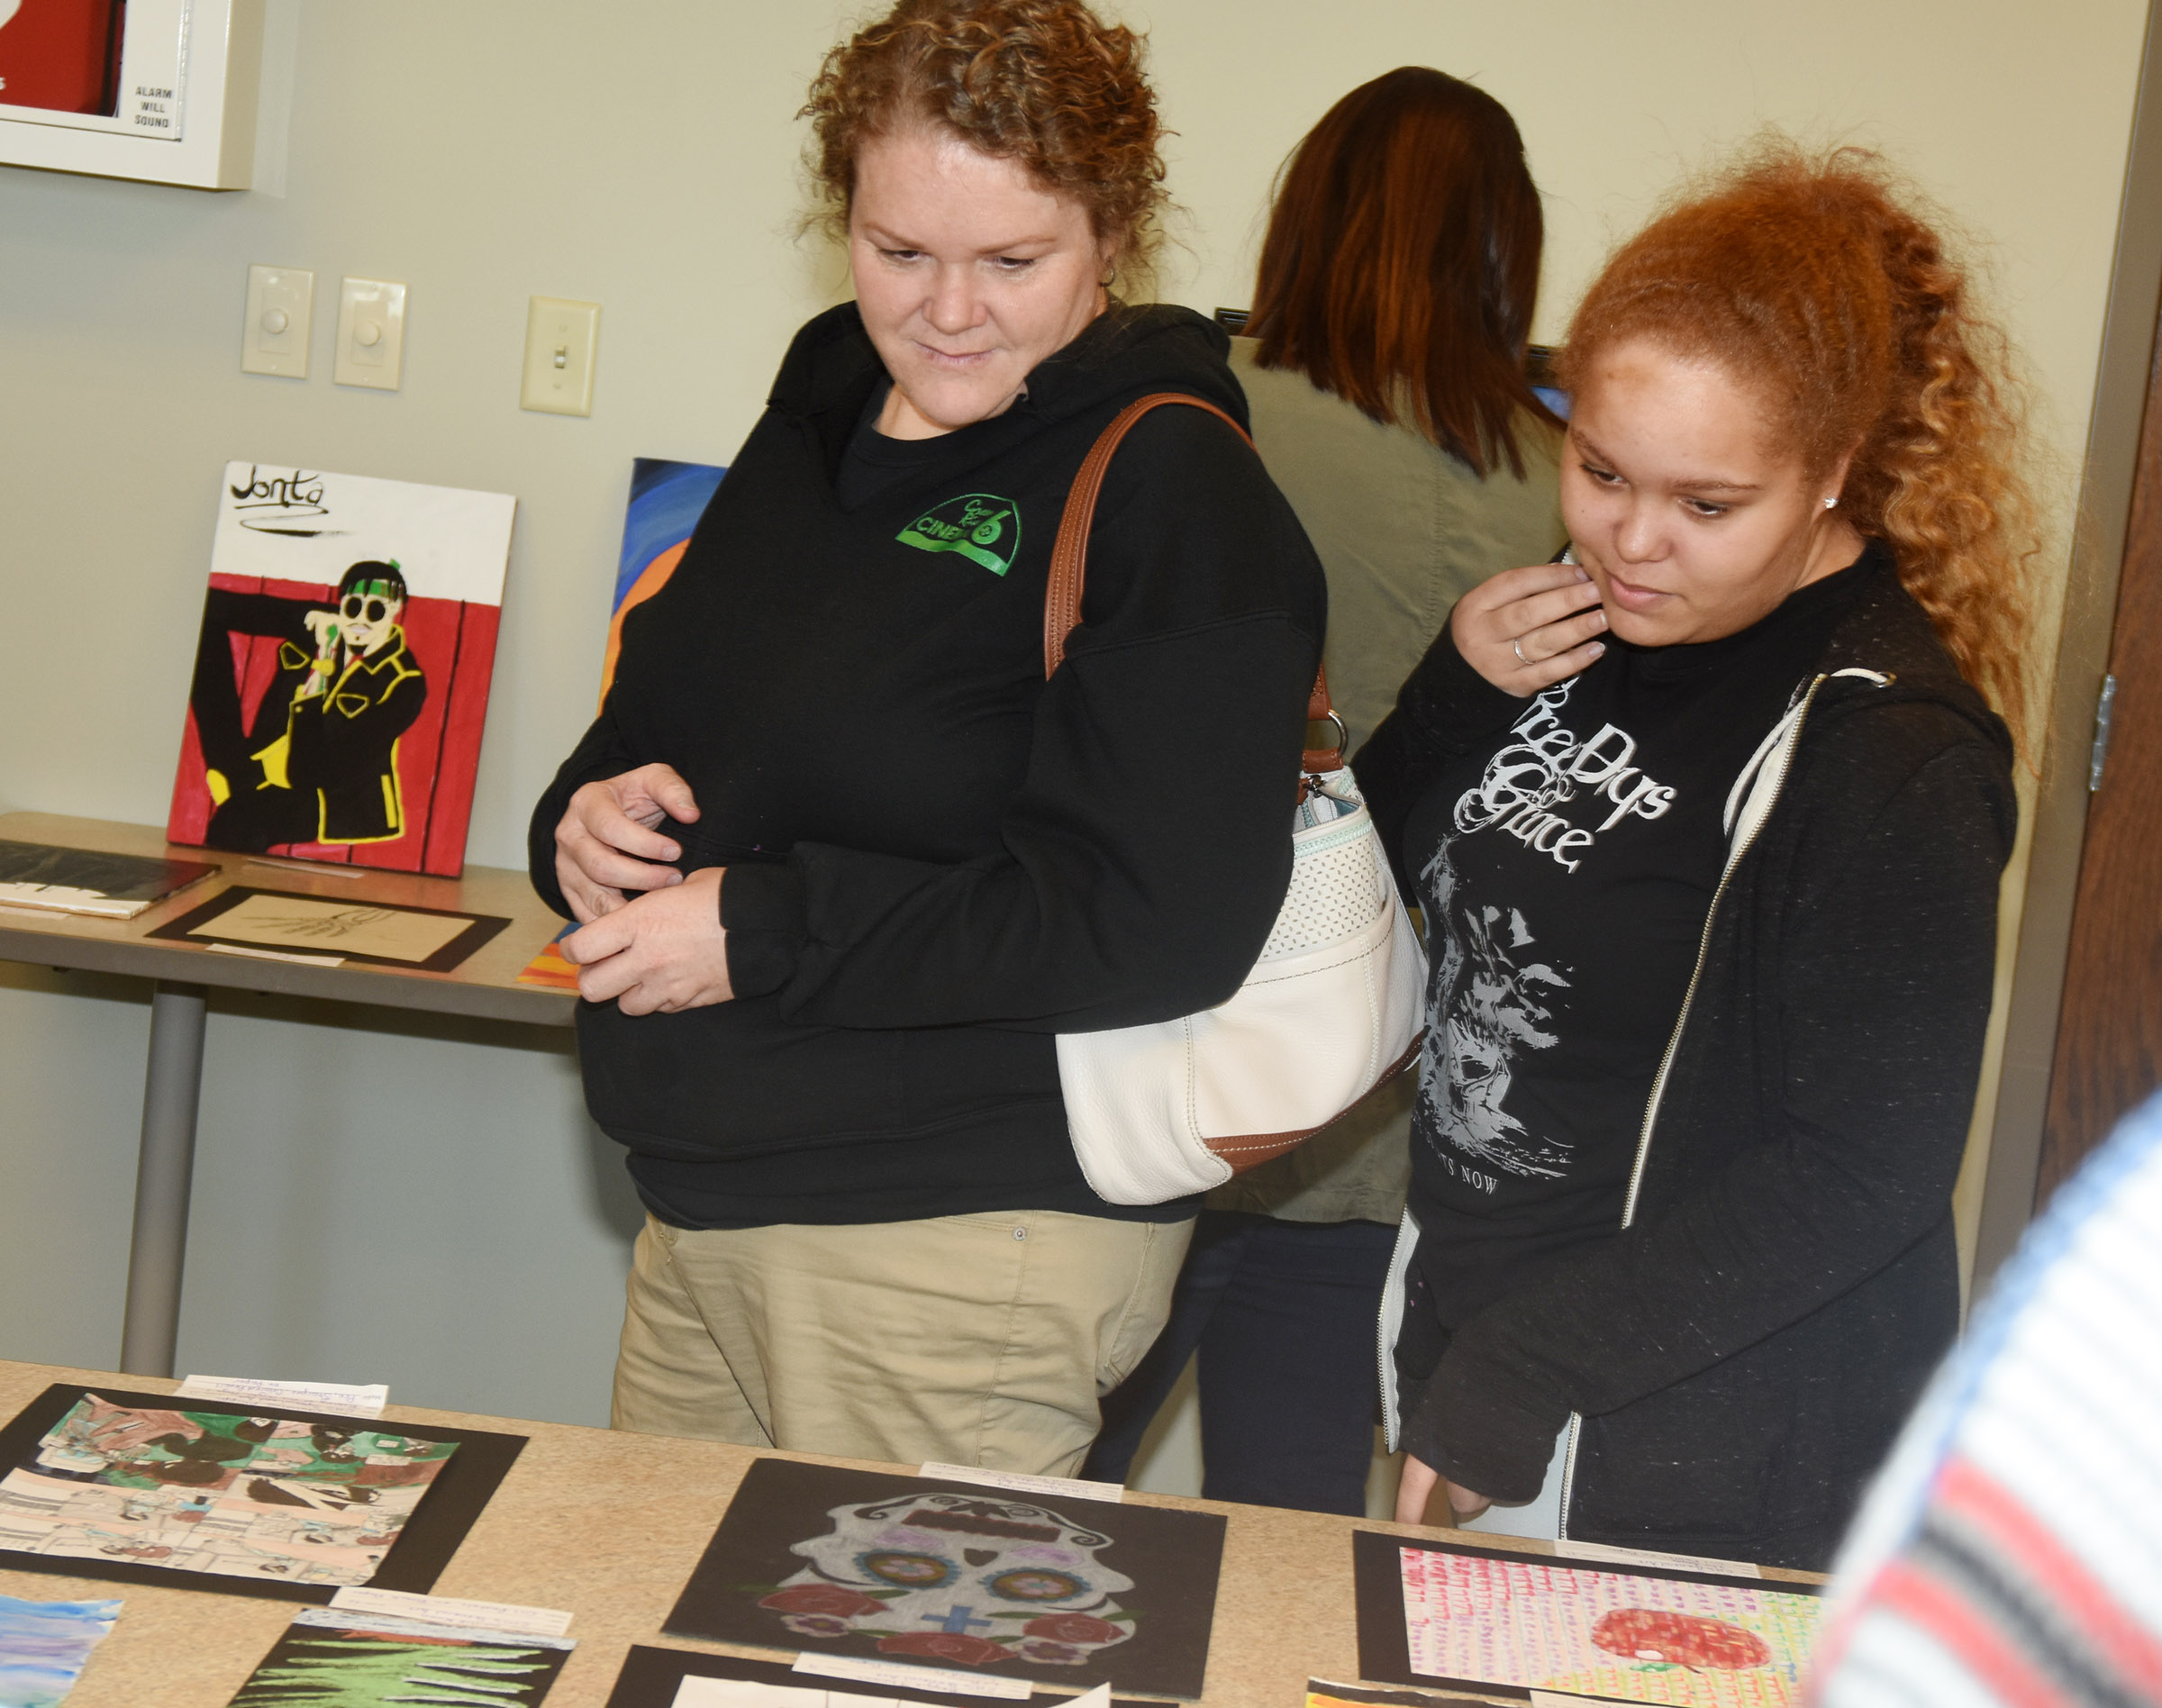 CHS senior Shailyn Fields looks at artwork with her mother Tammy Pittman.